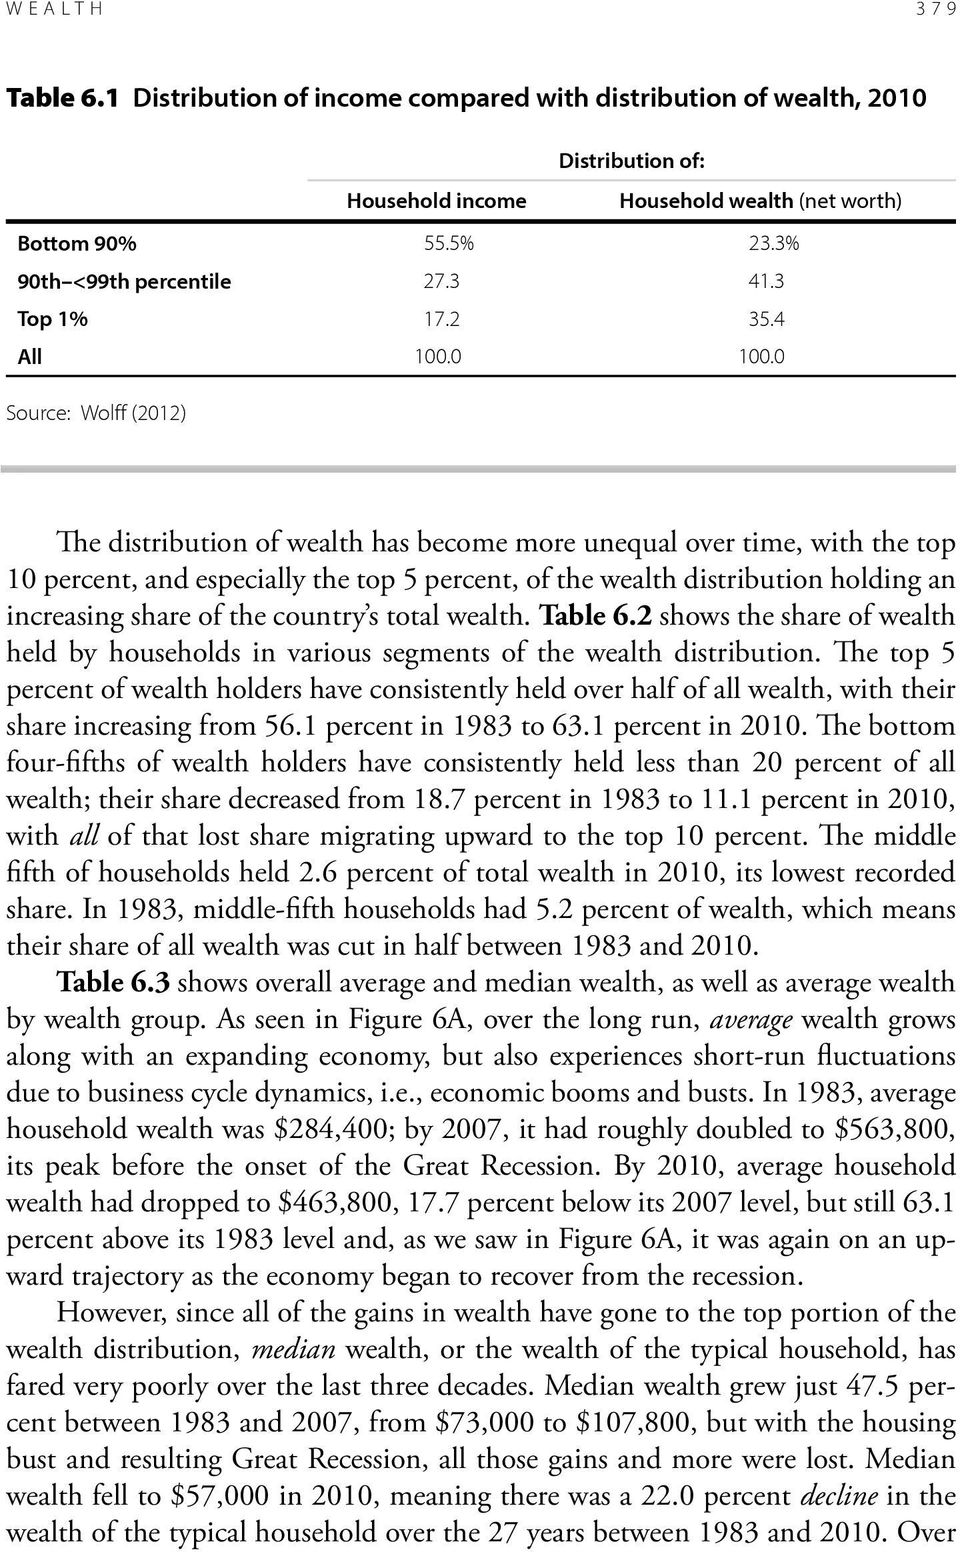 The top 5 percent of wealth holders have consistently held over half of all wealth, with their share increasing from 56.1 percent in 1983 to 63.1 percent in 2010.